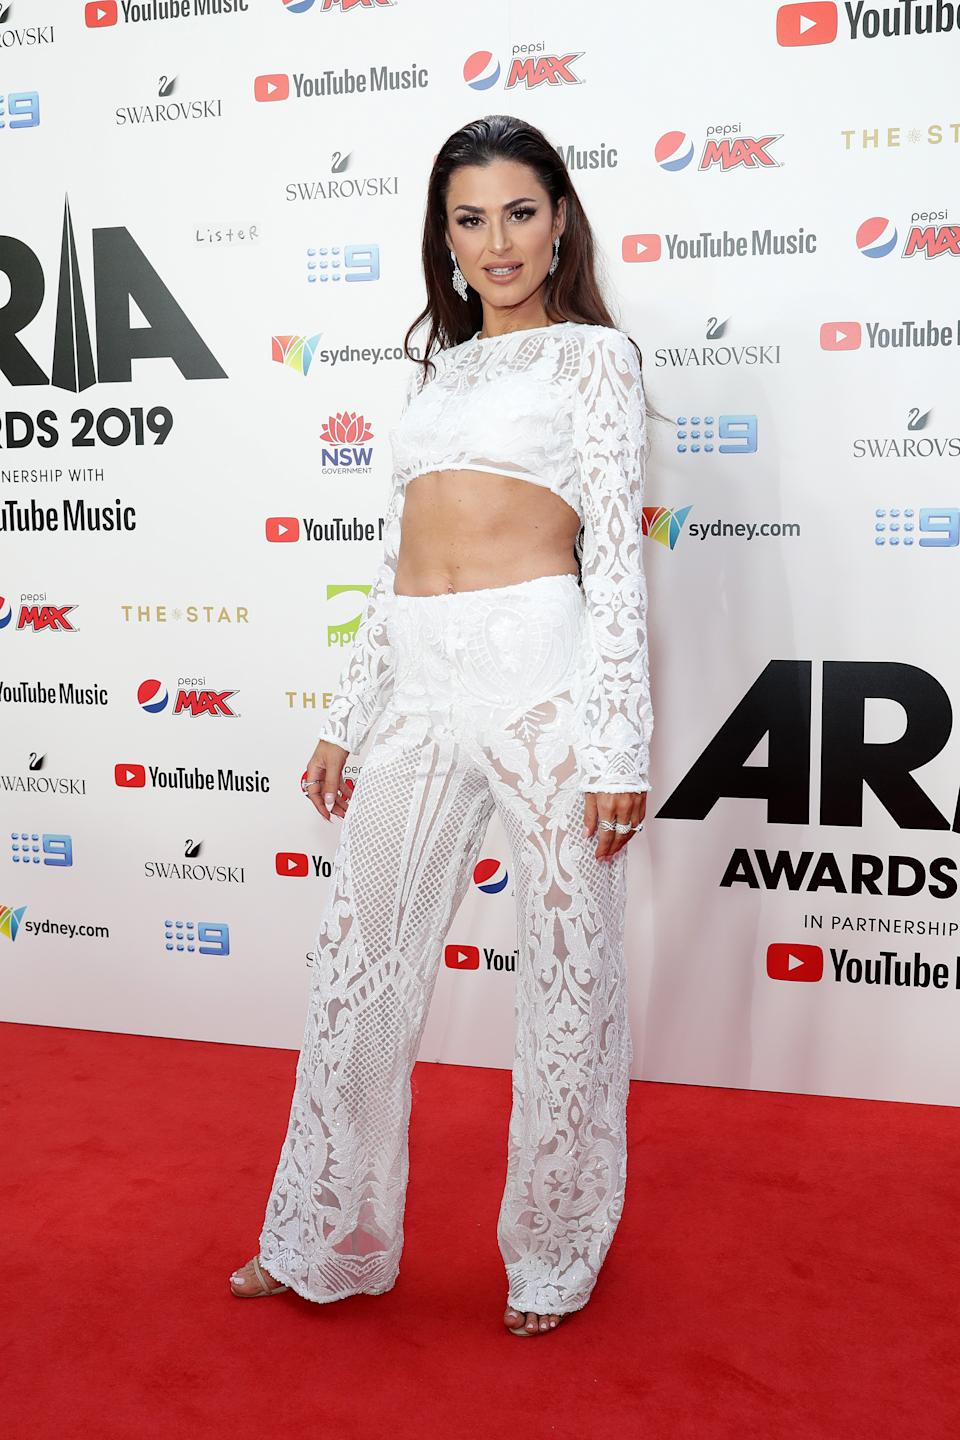 Helena Ellis wore a two-piece, lace ensemble to the ARIA Awards 2019. Photo: Getty Images